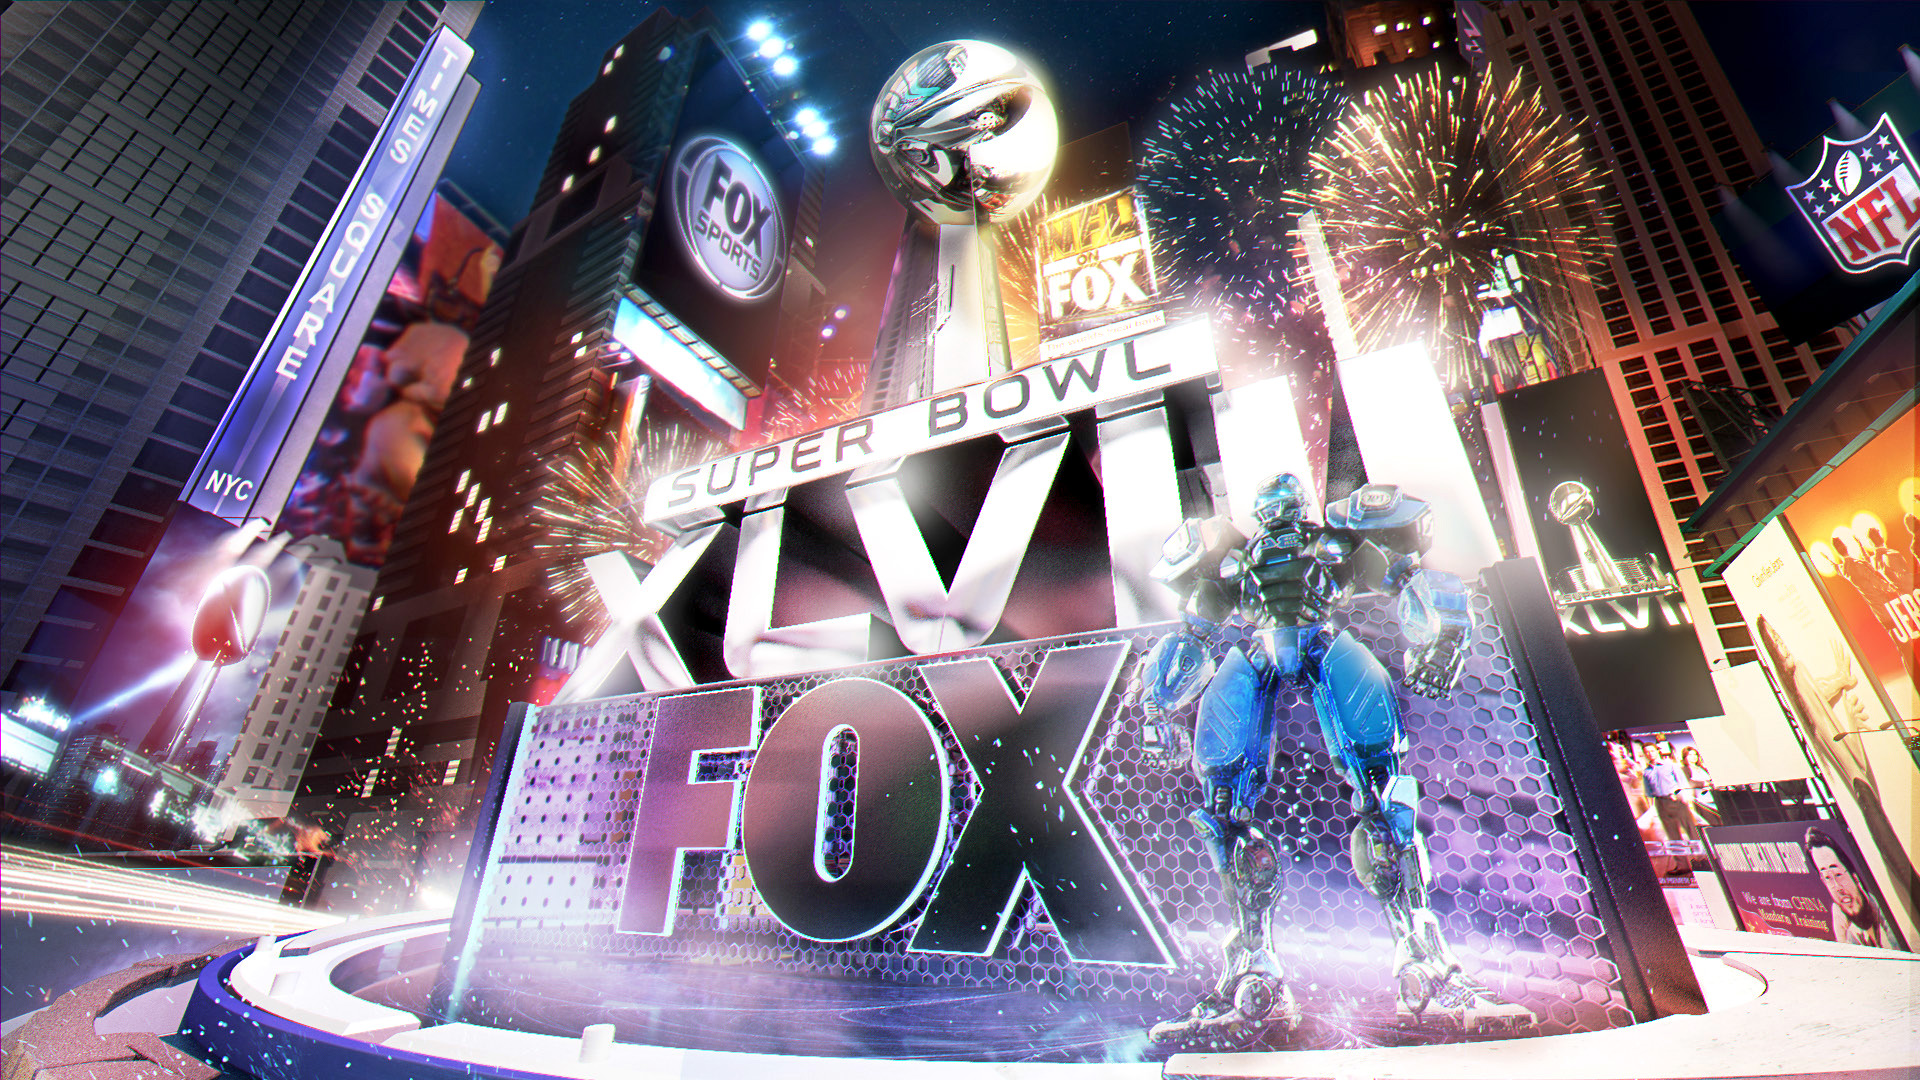 Super Bowl XLVIII opener | SCAD.edu